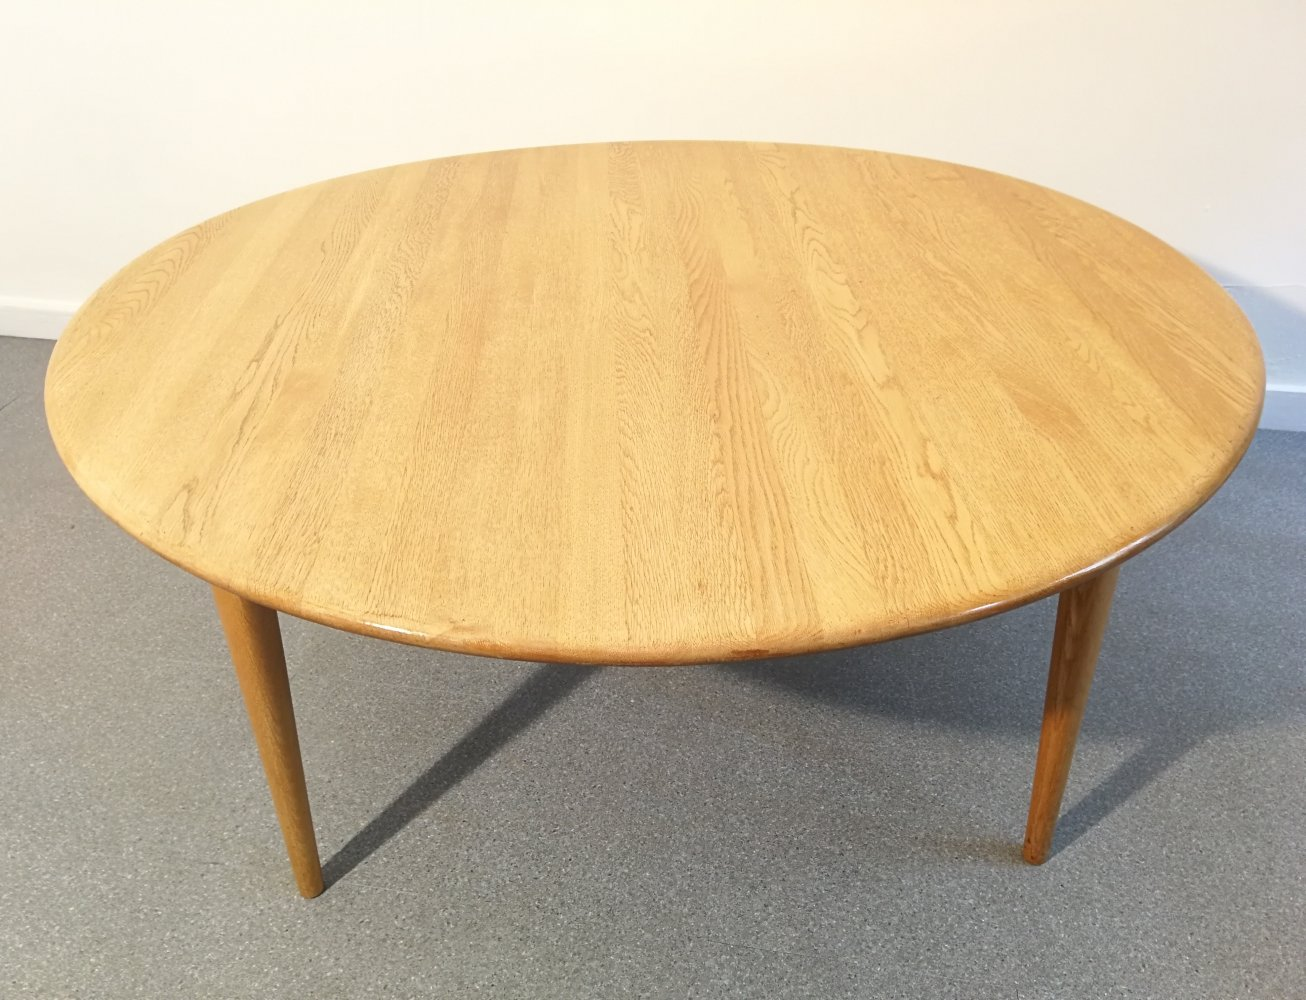 Large wood coffee table, 1960s